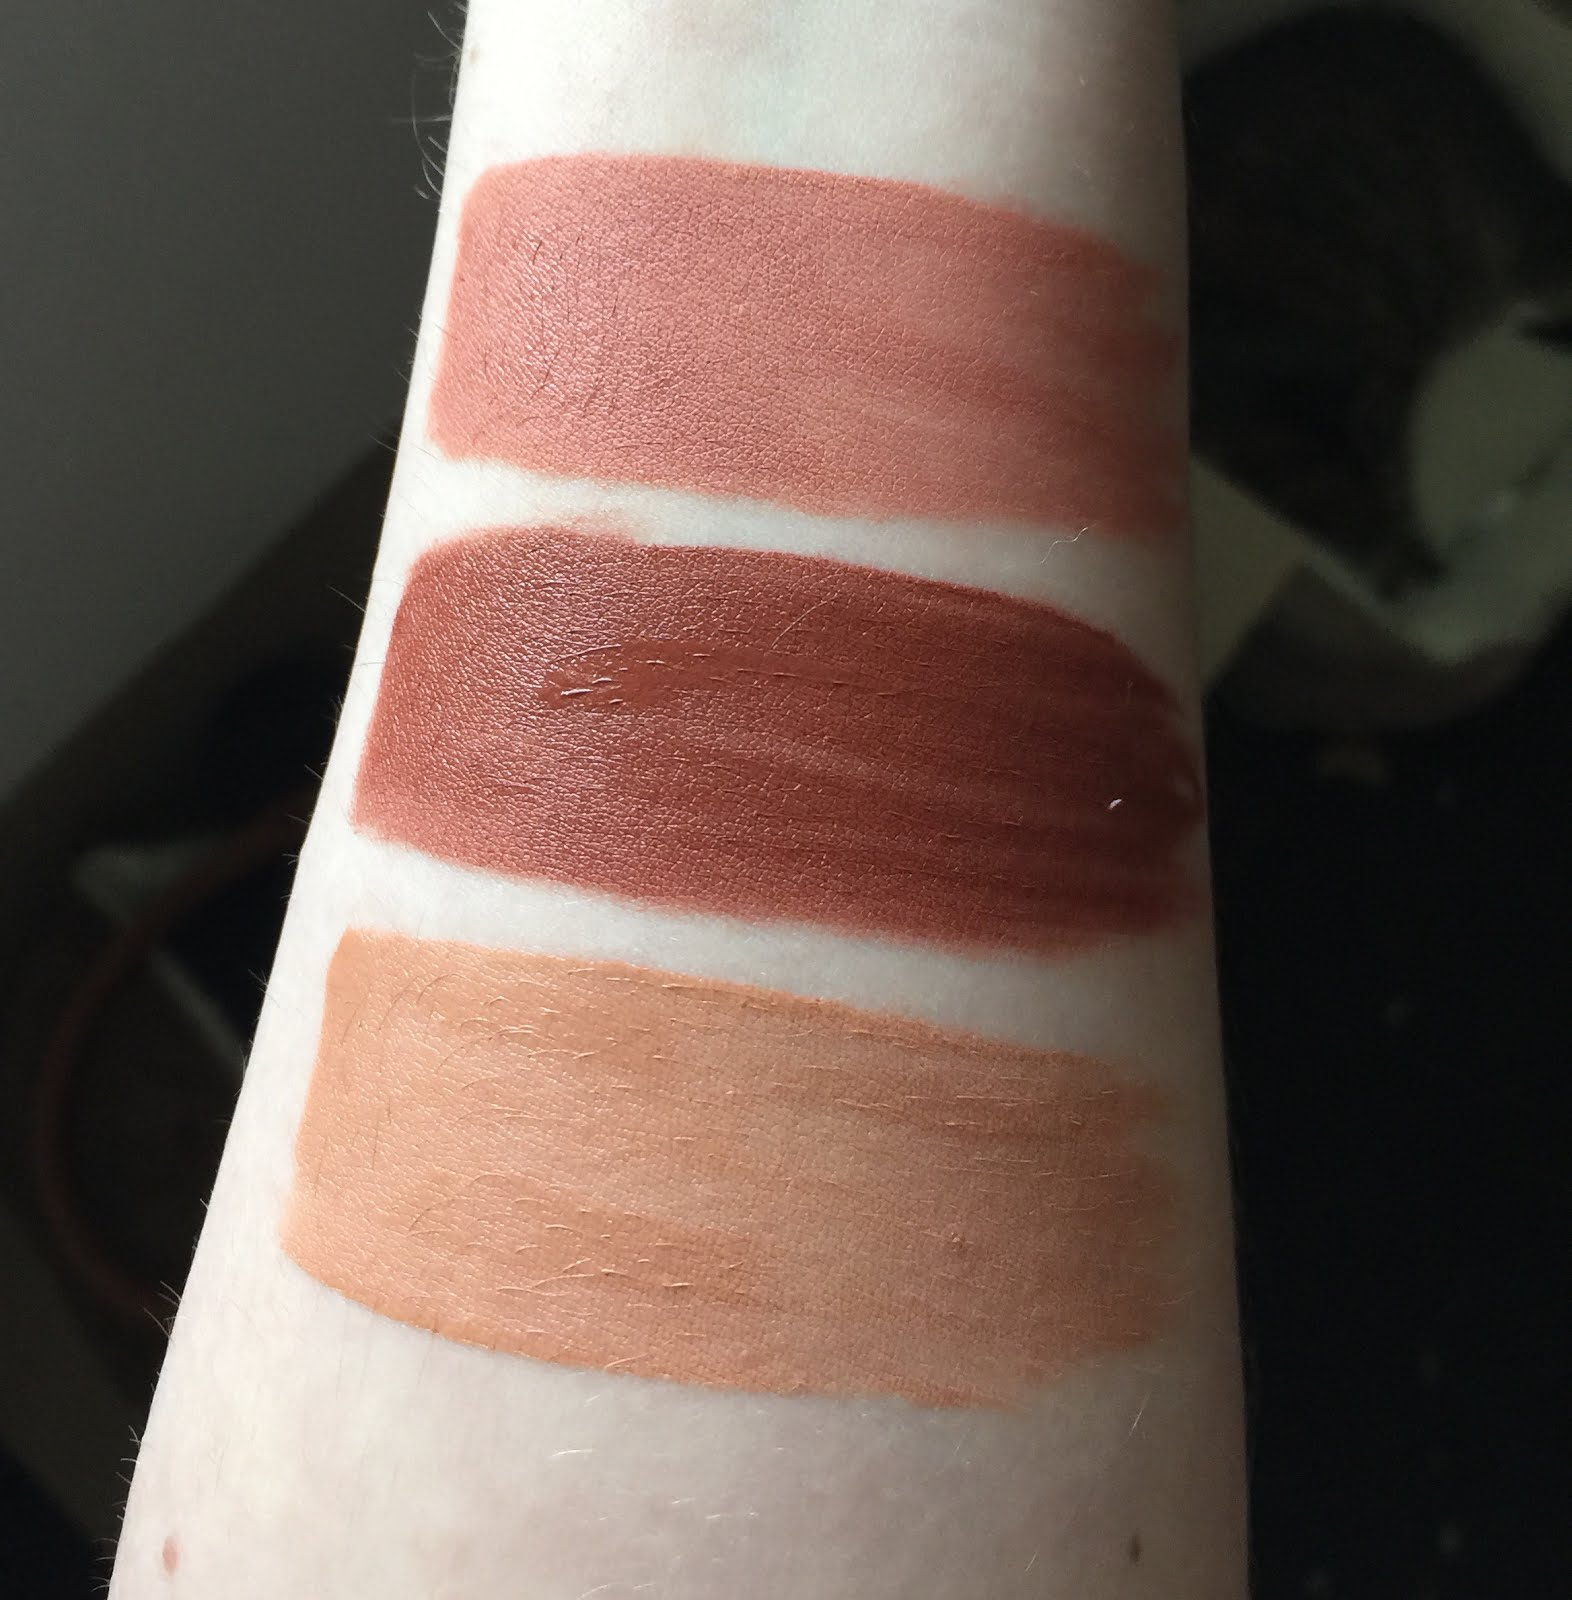 Beauty Bakerie Cosmetics Lip Whips Review w/ Swatches (Gingersnap ...